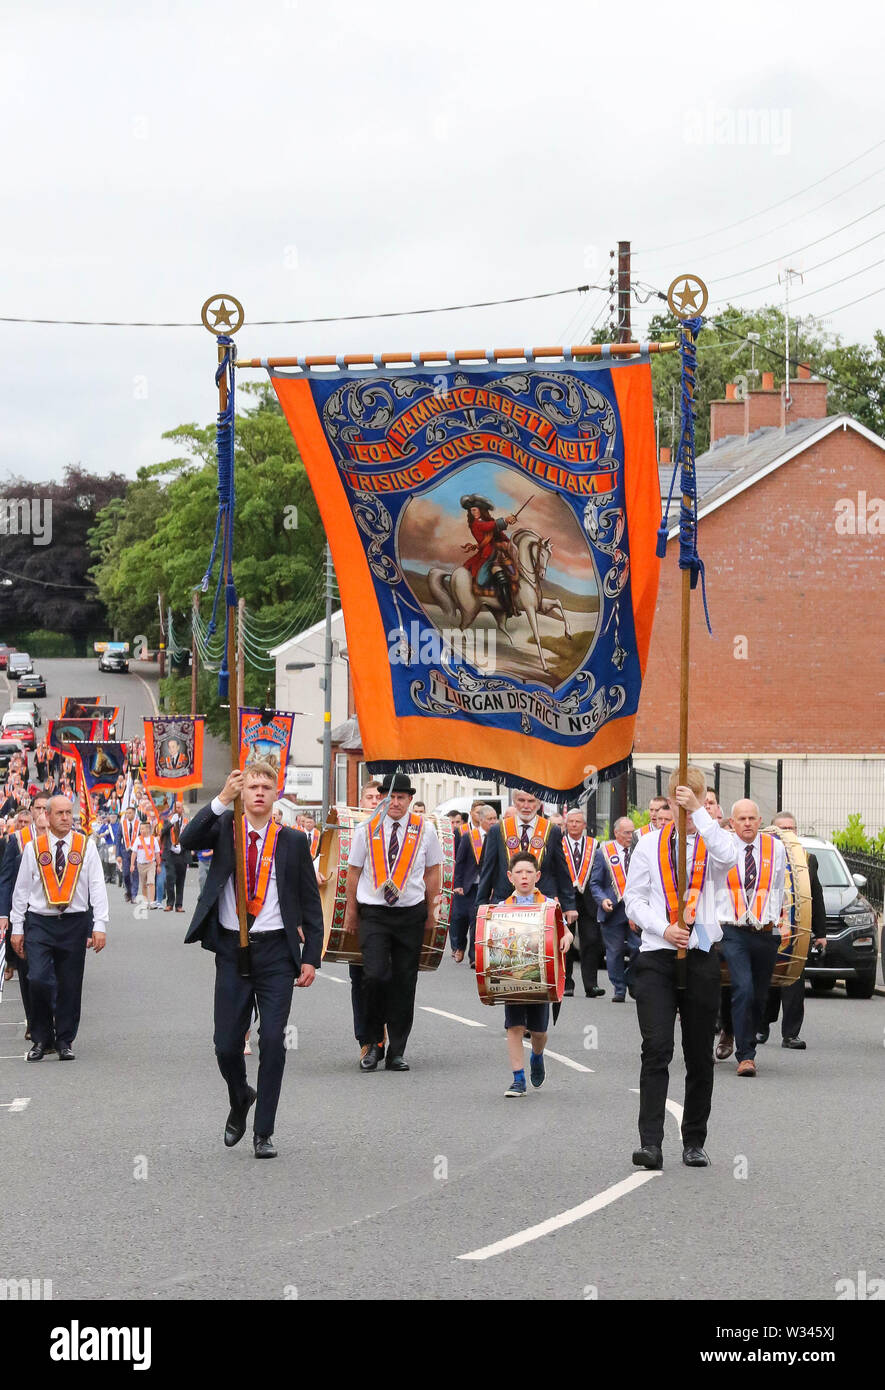 Lurgan, County Armagh, Northern Ireland.12 July 2019. The Twelfth of July is marked by Orange Order parades across Northern Ireland. Lurgan District left their headquarters at Brownlow House before parading up the town to the war memorial and then headed to the town of Tandragee for the main County Armagh demonstration. The parades across Northern Ireland mark the victory of William of Orange over James at the Battle of the Boyne in 1690. Credit: CAZIMB/Alamy Live News. - Stock Image